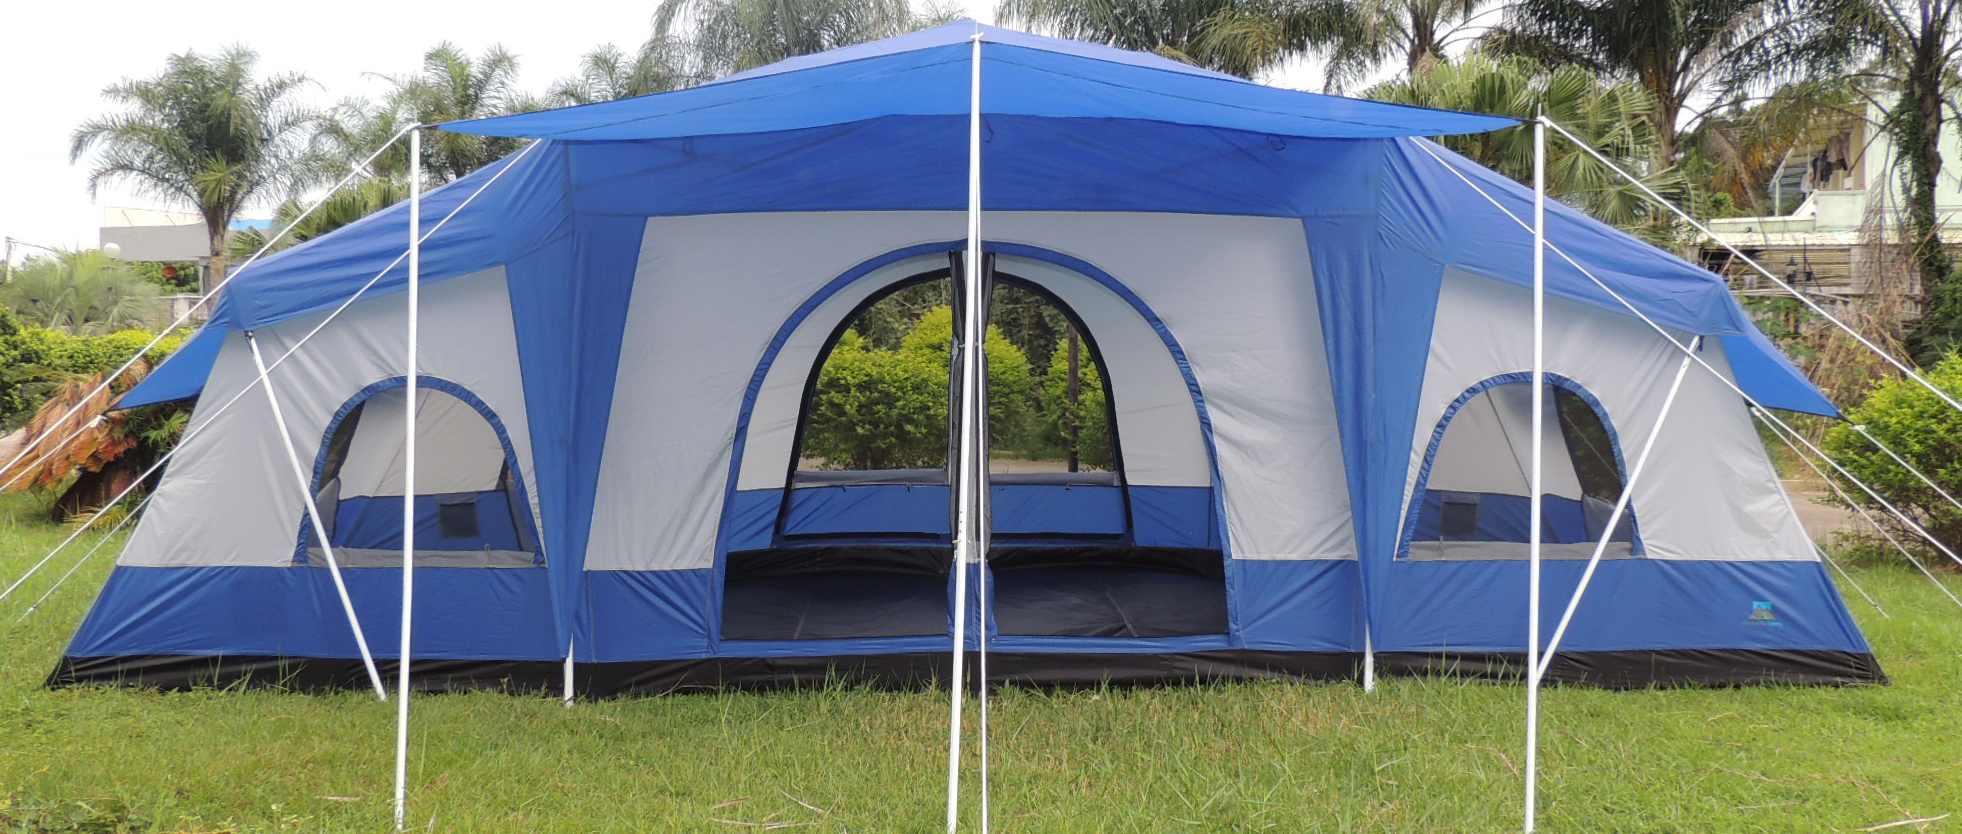 Cabin-Tent-Deluxe-Four-Room-Front-View ... : really big tents - memphite.com